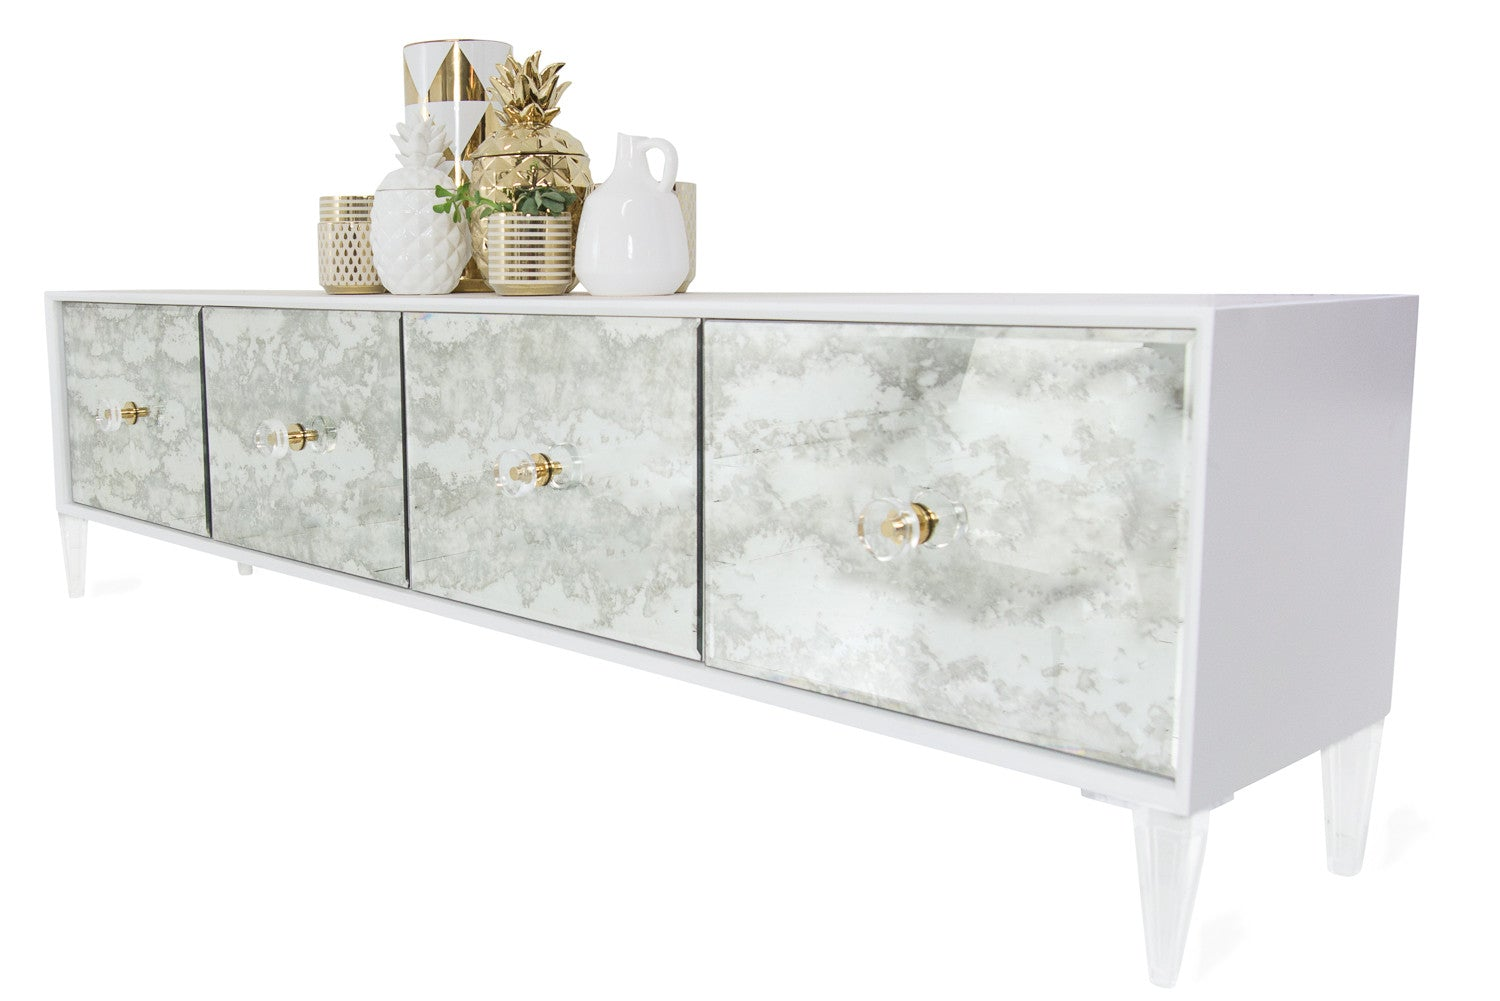 Design White Credenza antique mirrored modern credenza modshop juliette 4 door in white